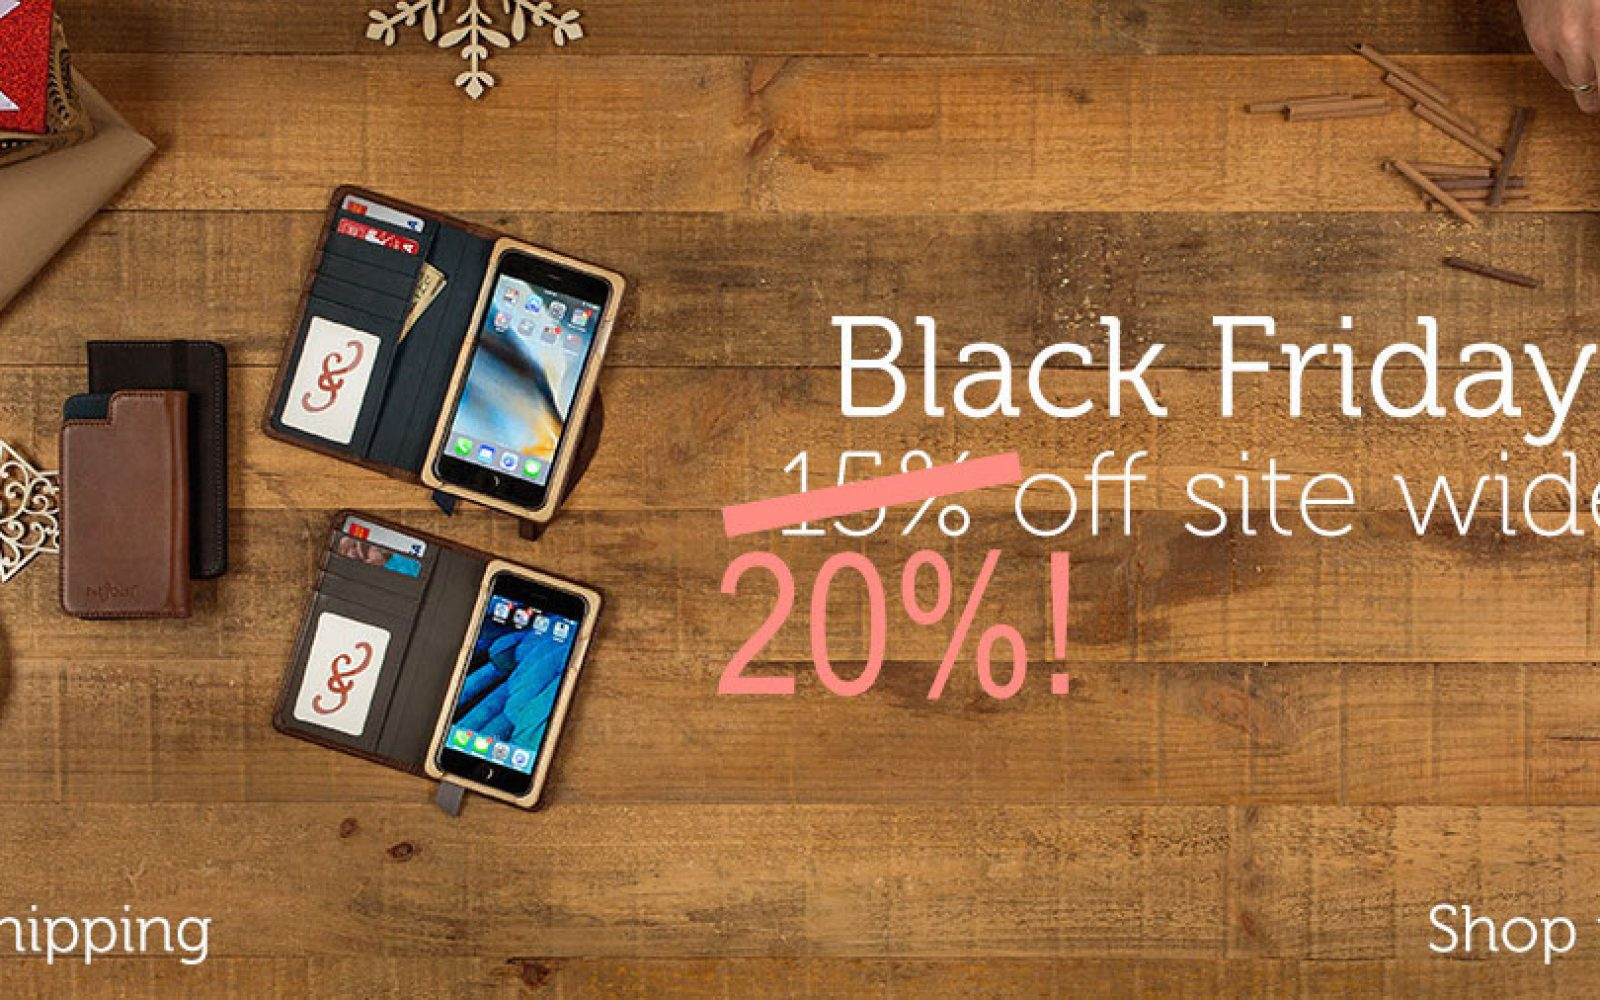 Black Friday: The best deals on iPhone/iPad/Mac accessories +